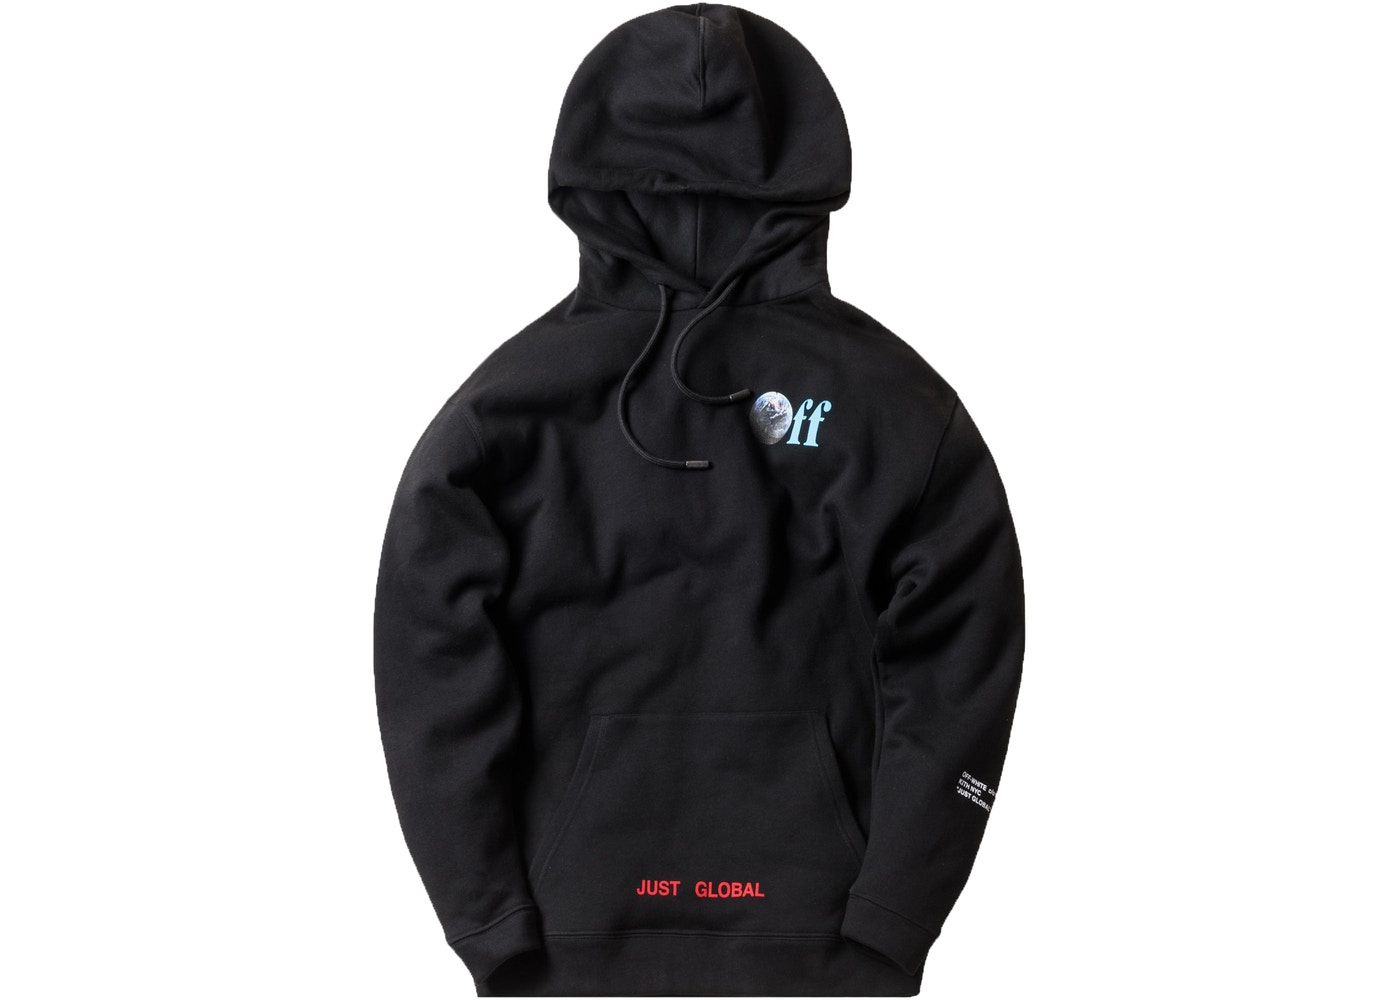 35600820b90a Kith Off-White Just Global Hoodie Black - FW17